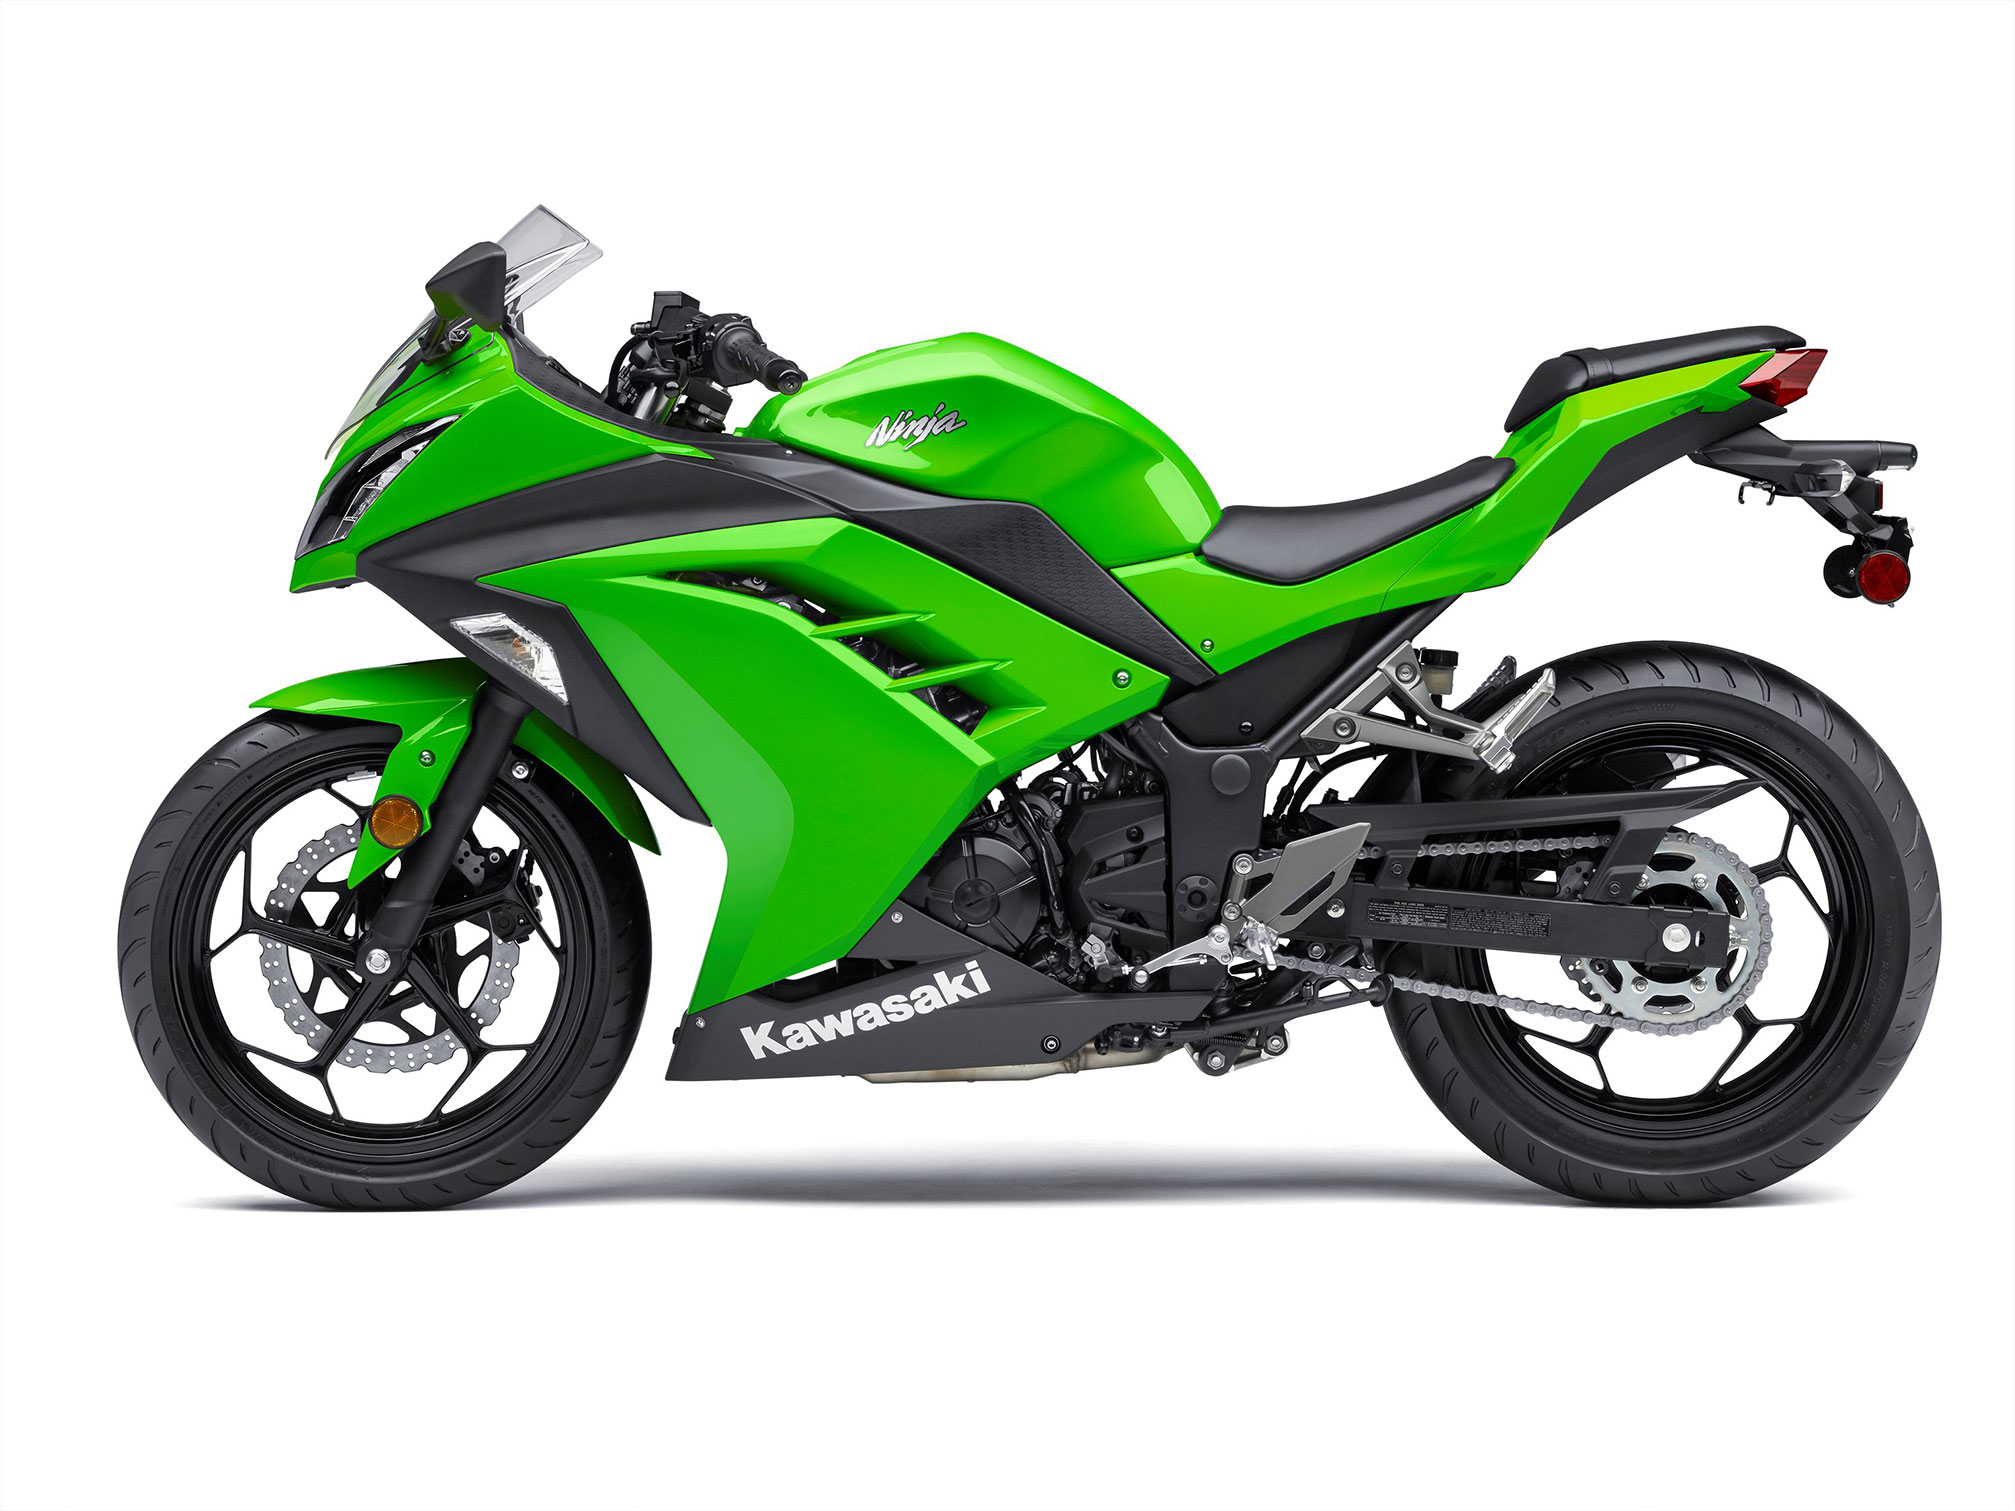 2015 Kawasaki Ninja 300 Review